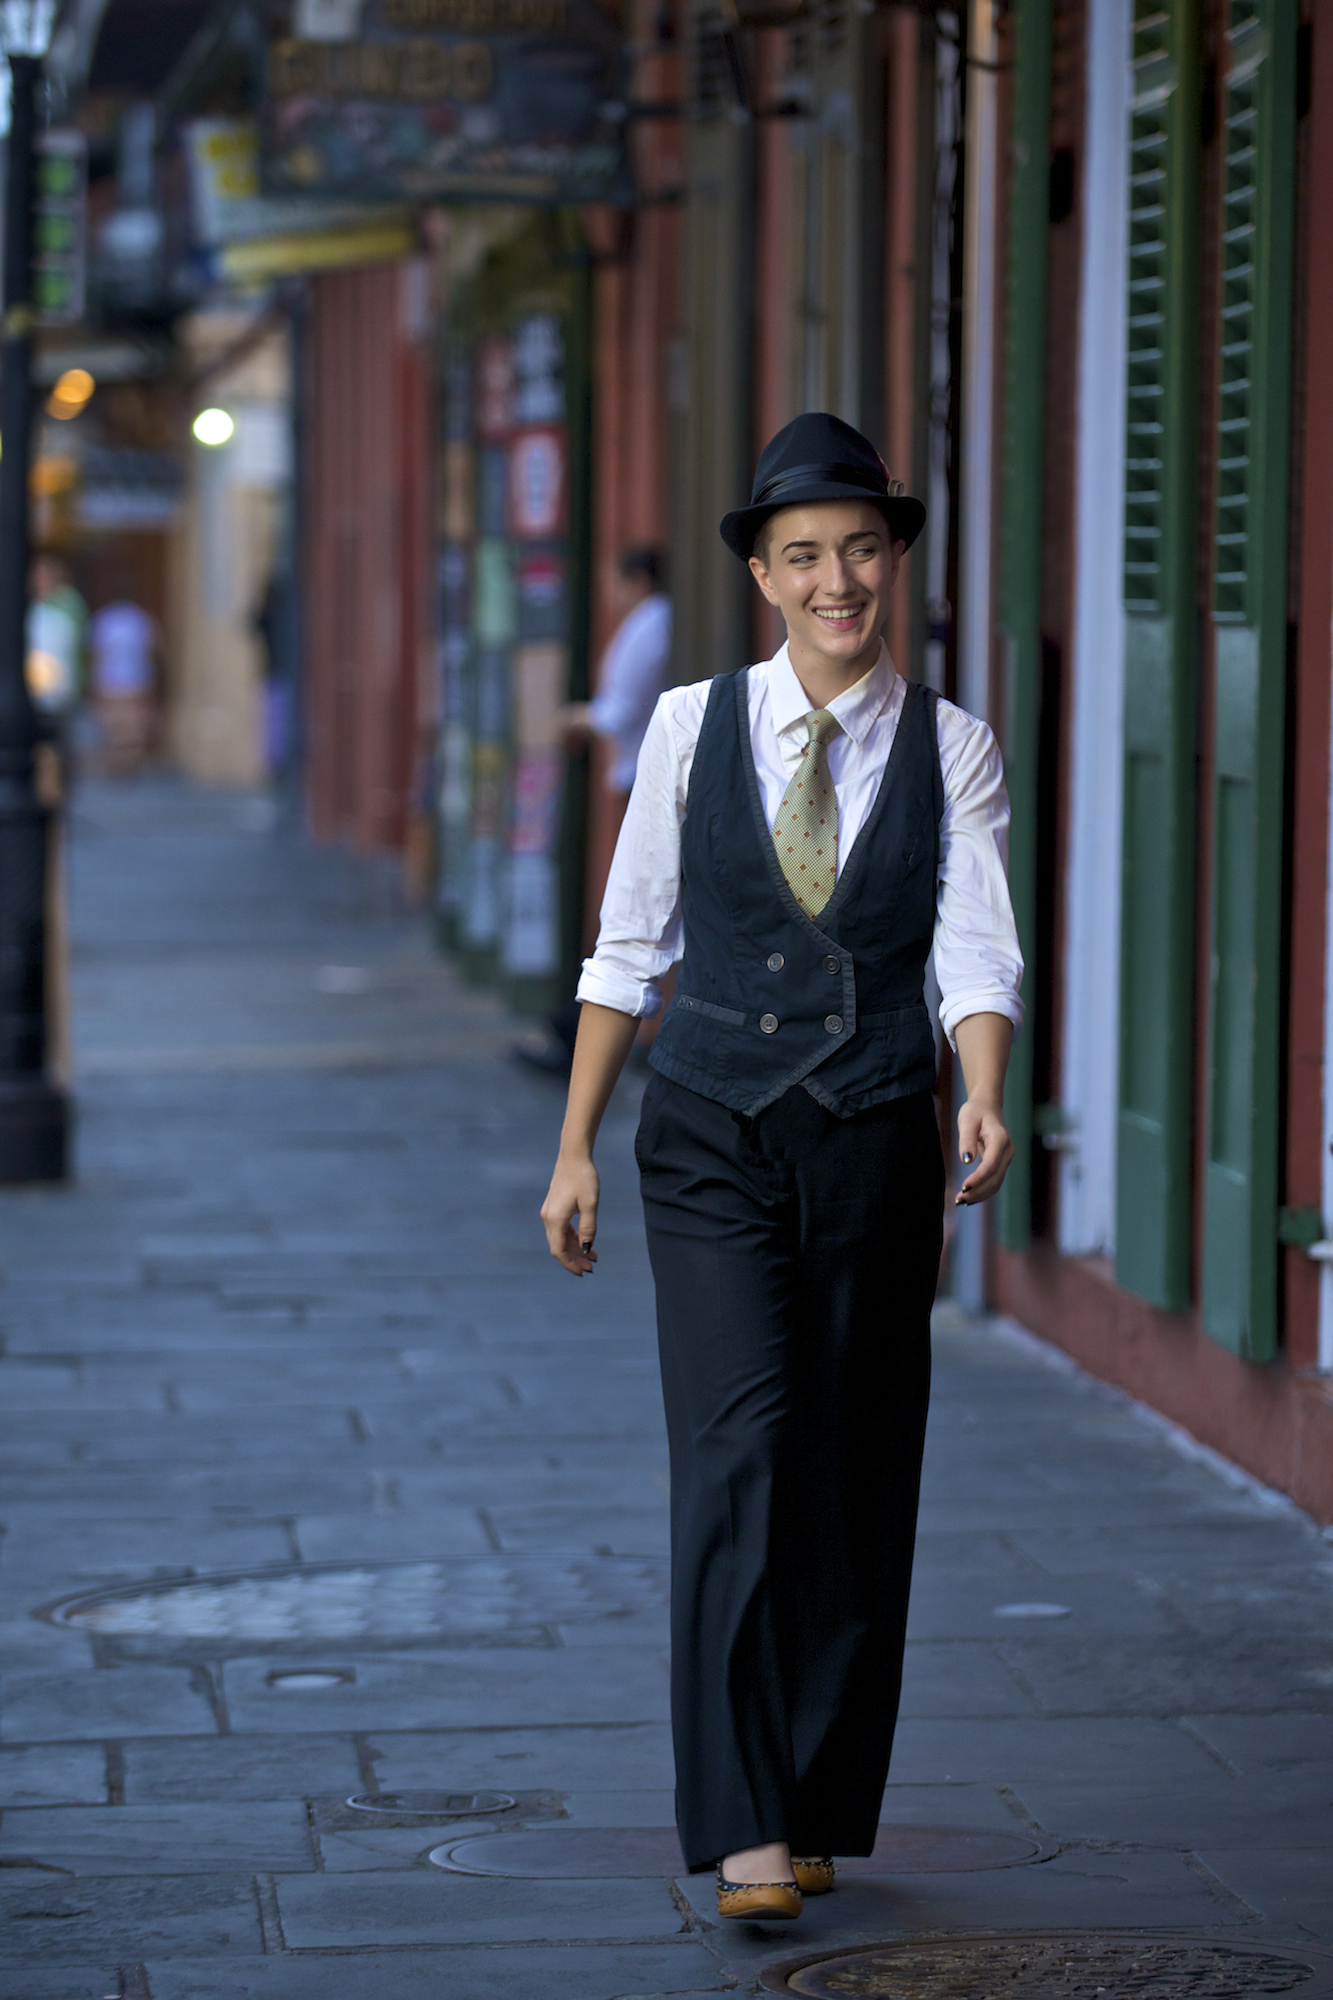 Model, singer, and actor, Kimberly Kaye,photographed in the New Orleans French Quarter by New Orleans based photographer, Marc Pagani